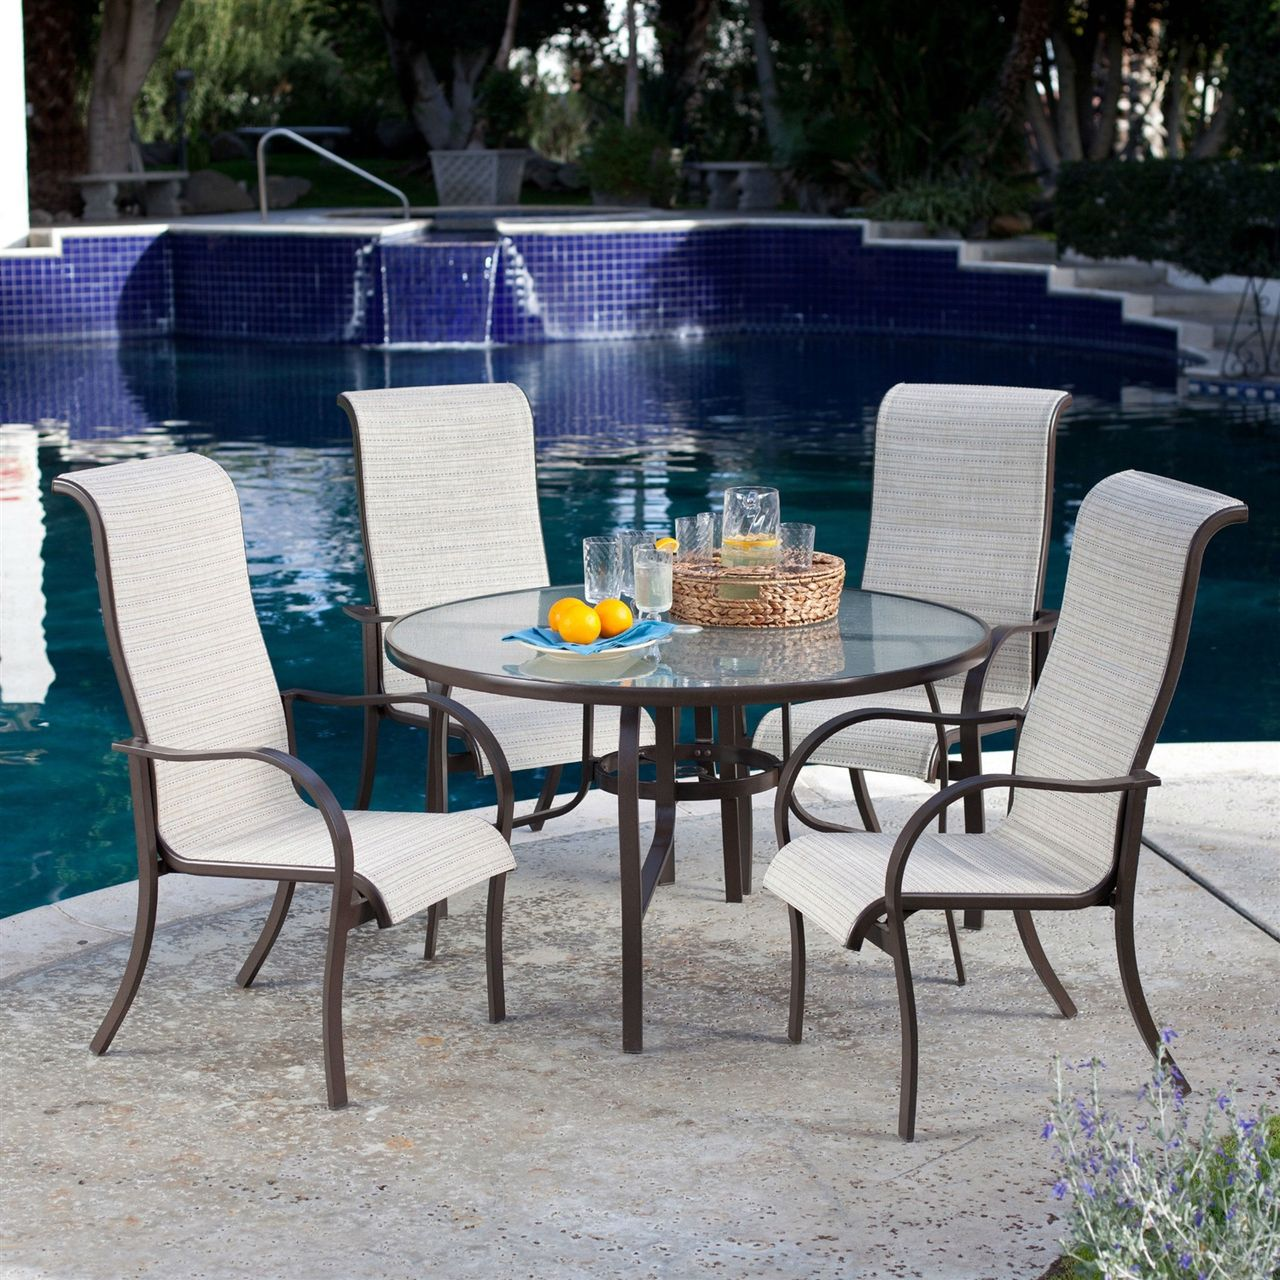 5 Pc Patio Furniture Dining Set Table 4 Padded